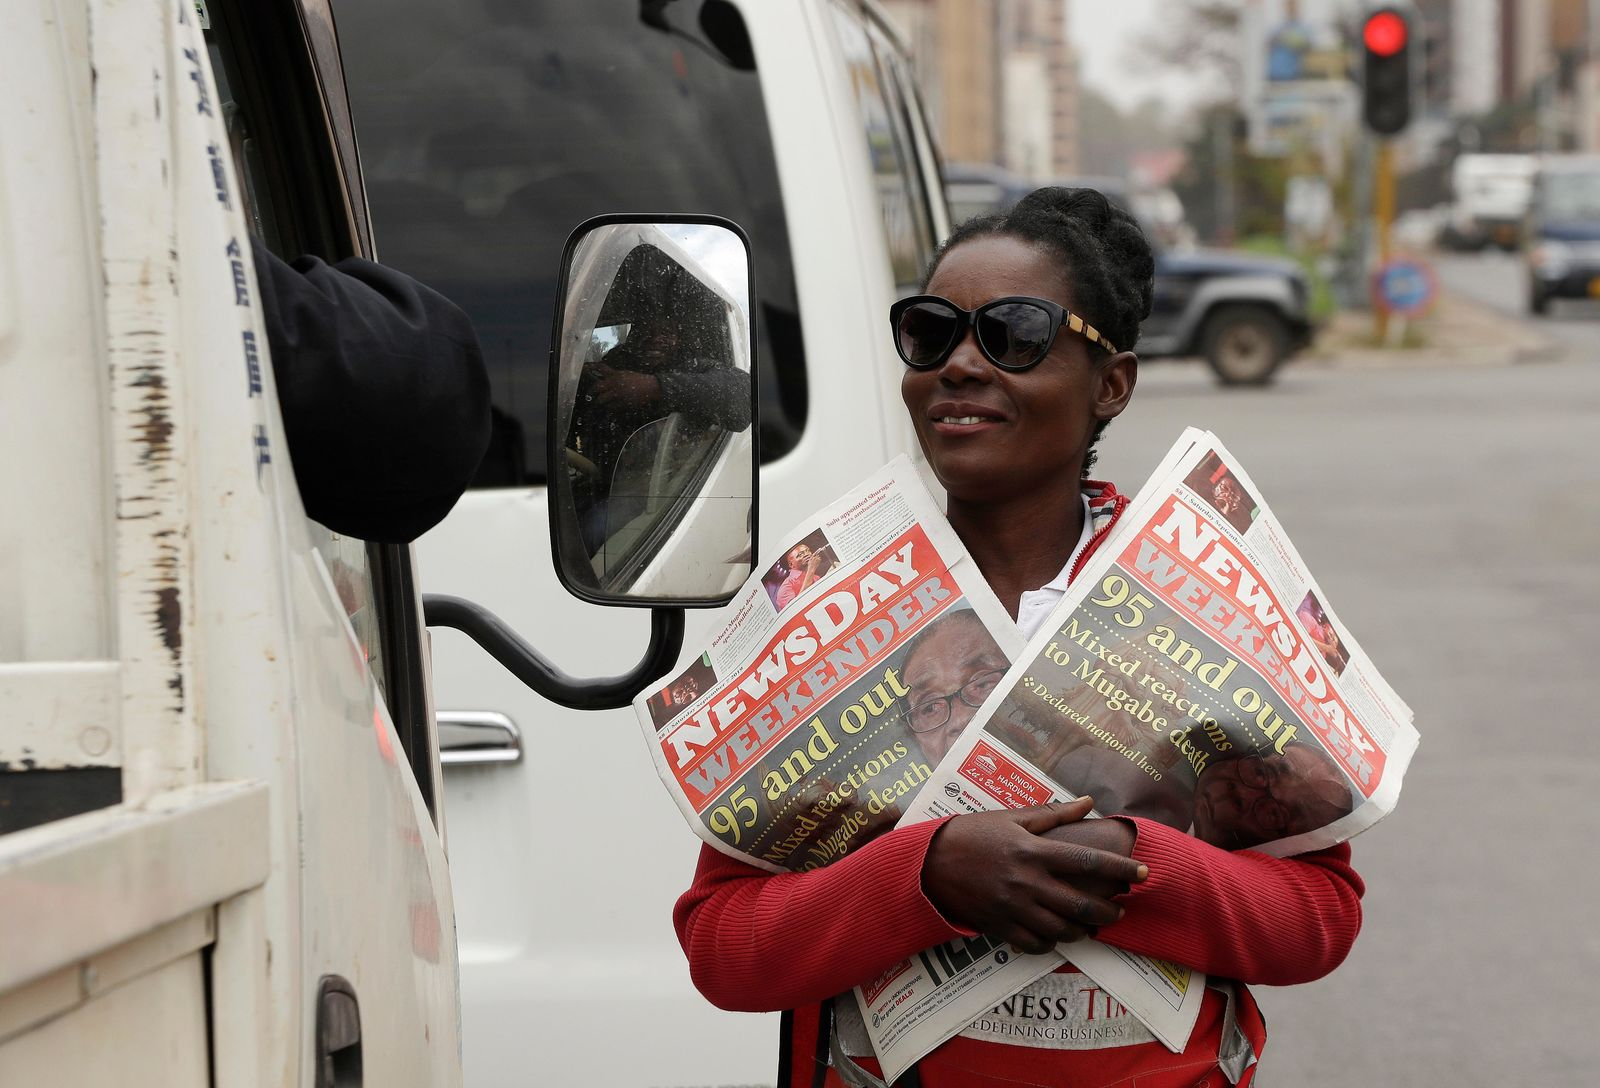 A vendor sells newspapers on a street in Harare, Zimbabwe, Saturday, Sept. 7, 2019. (AP Photo/Themba Hadebe)